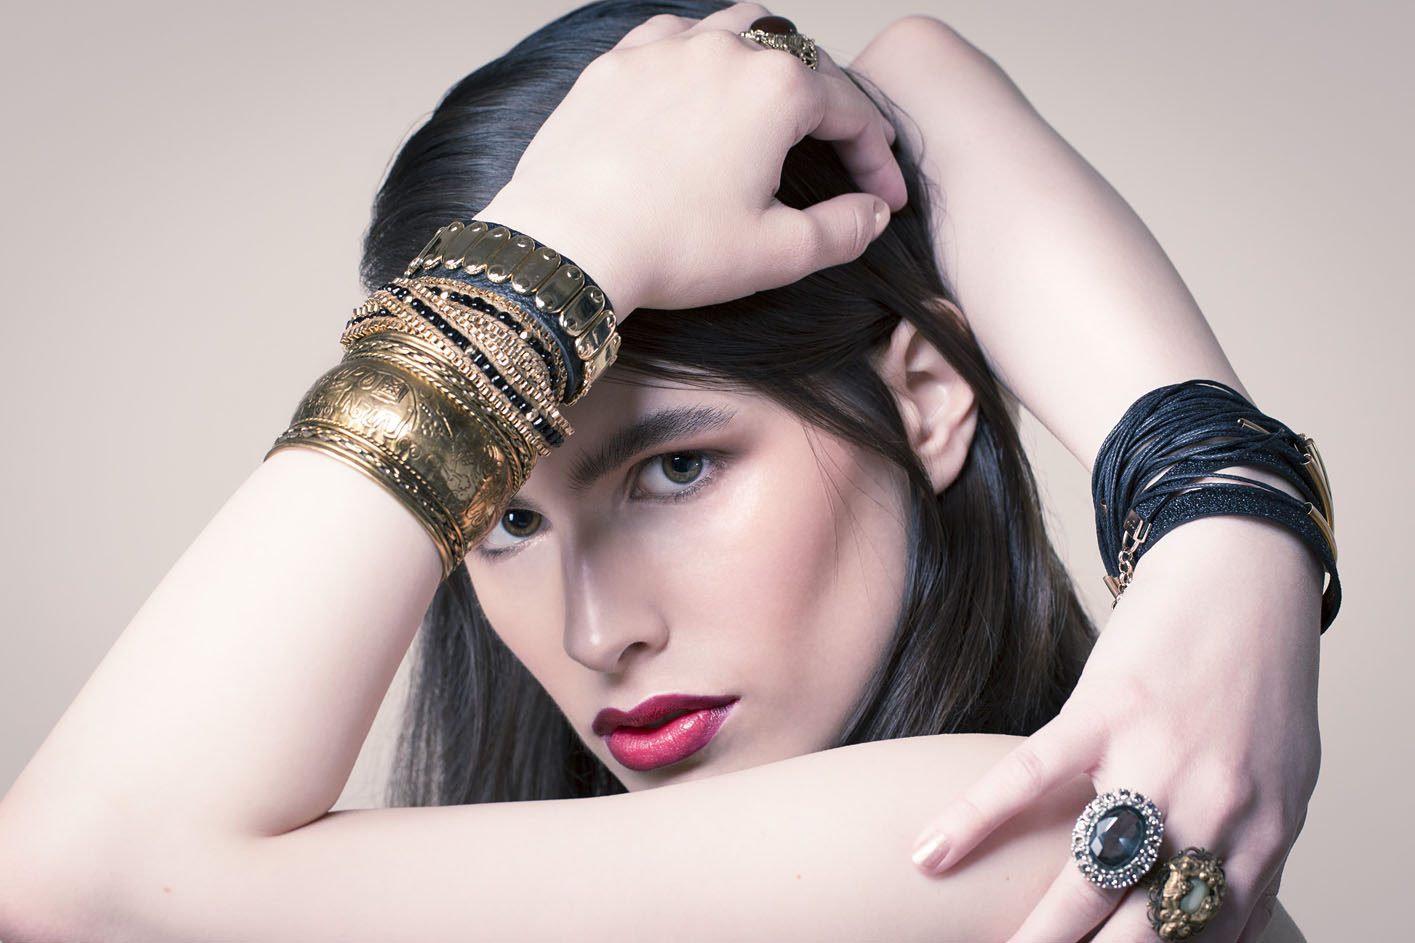 Photo: studio beauty cosmetics jewellery campaign photographer London studio Margaret Yescombe, Make-Up Artist Hairstylist Dorota Nowacka, Model Elisabeth. Red two-tone lipstick, stacked bracelets bangles metal and leather, costume jewellery diamond ring